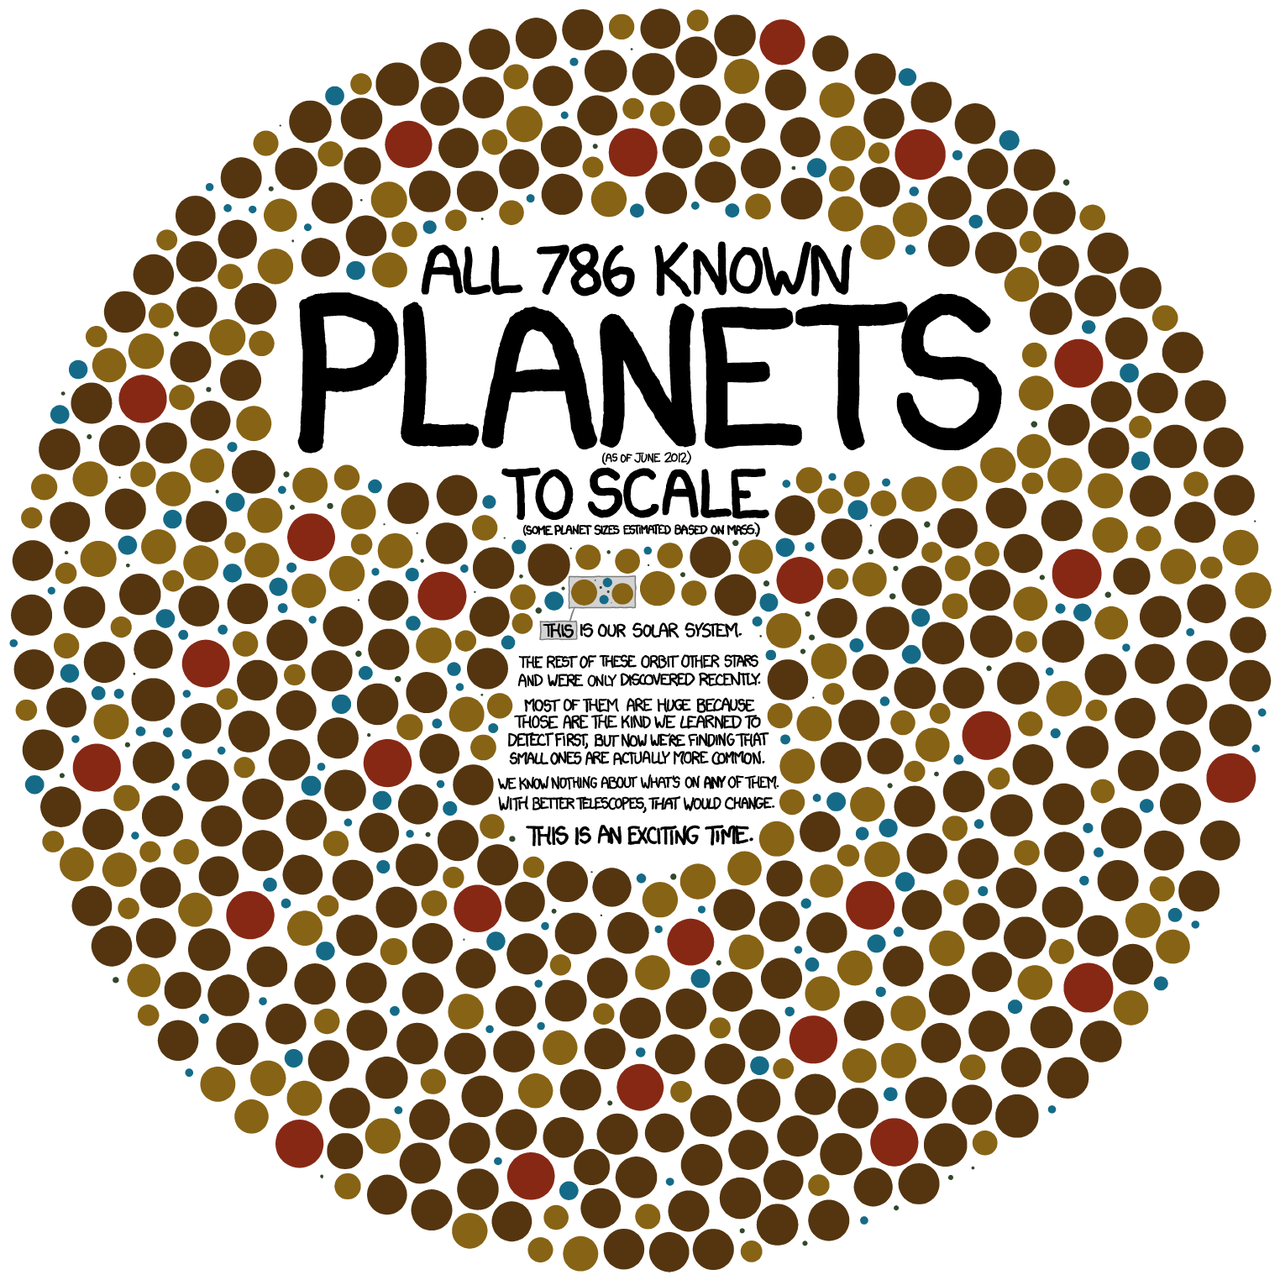 itsfullofstars:  xkcd.com presentes this image that shows all known planets, including those in our solar system. Click image for larger version.